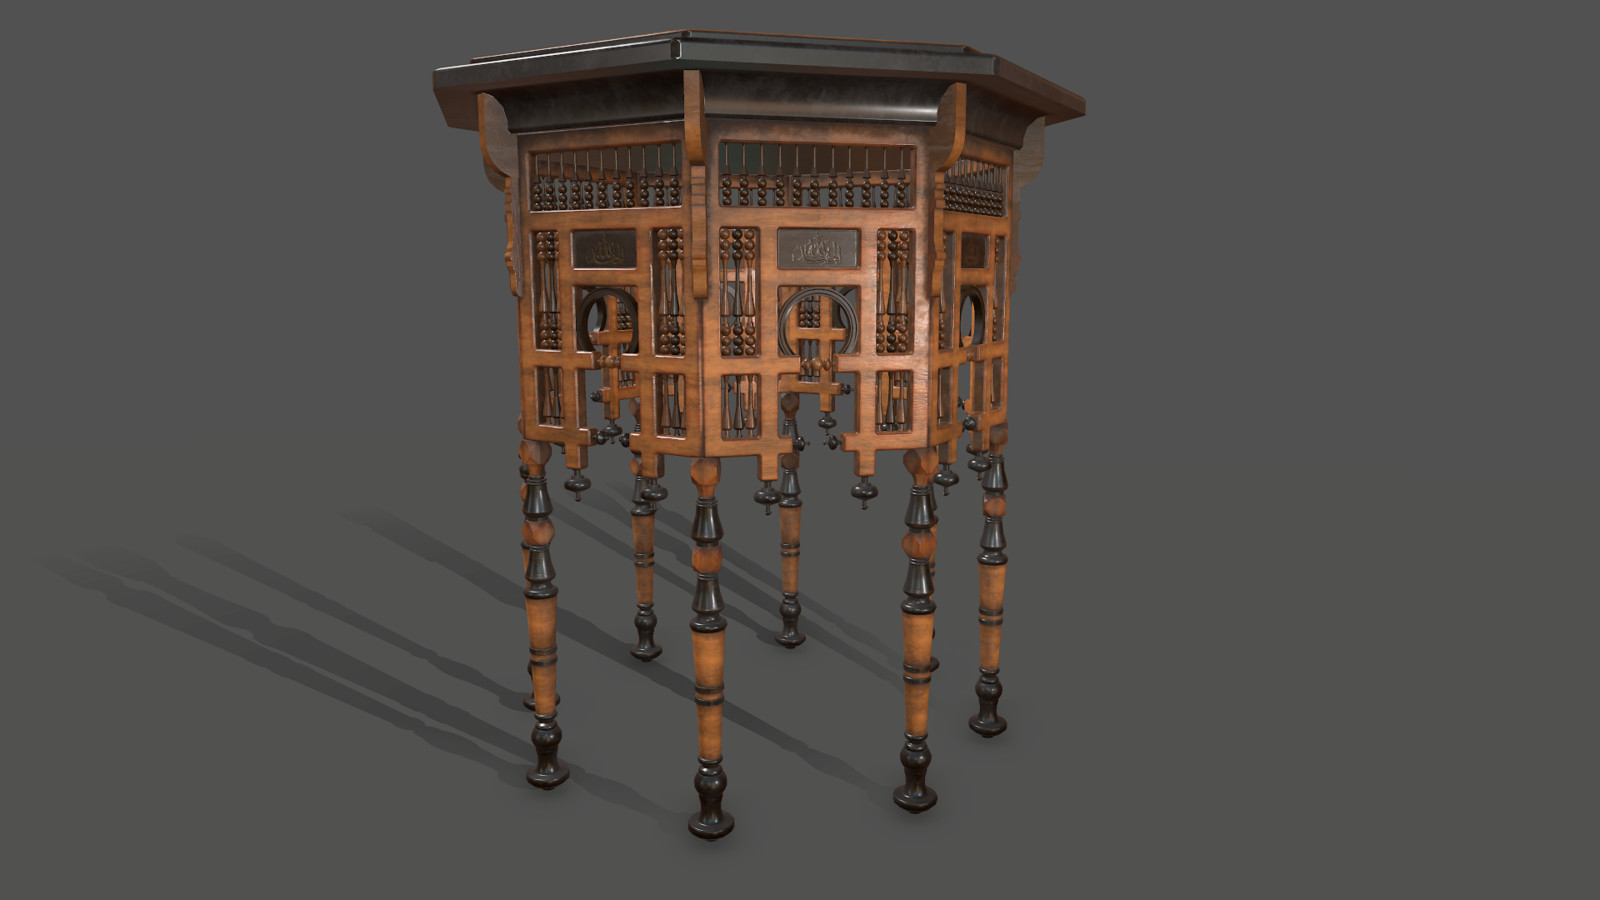 Ottoman Empire Table